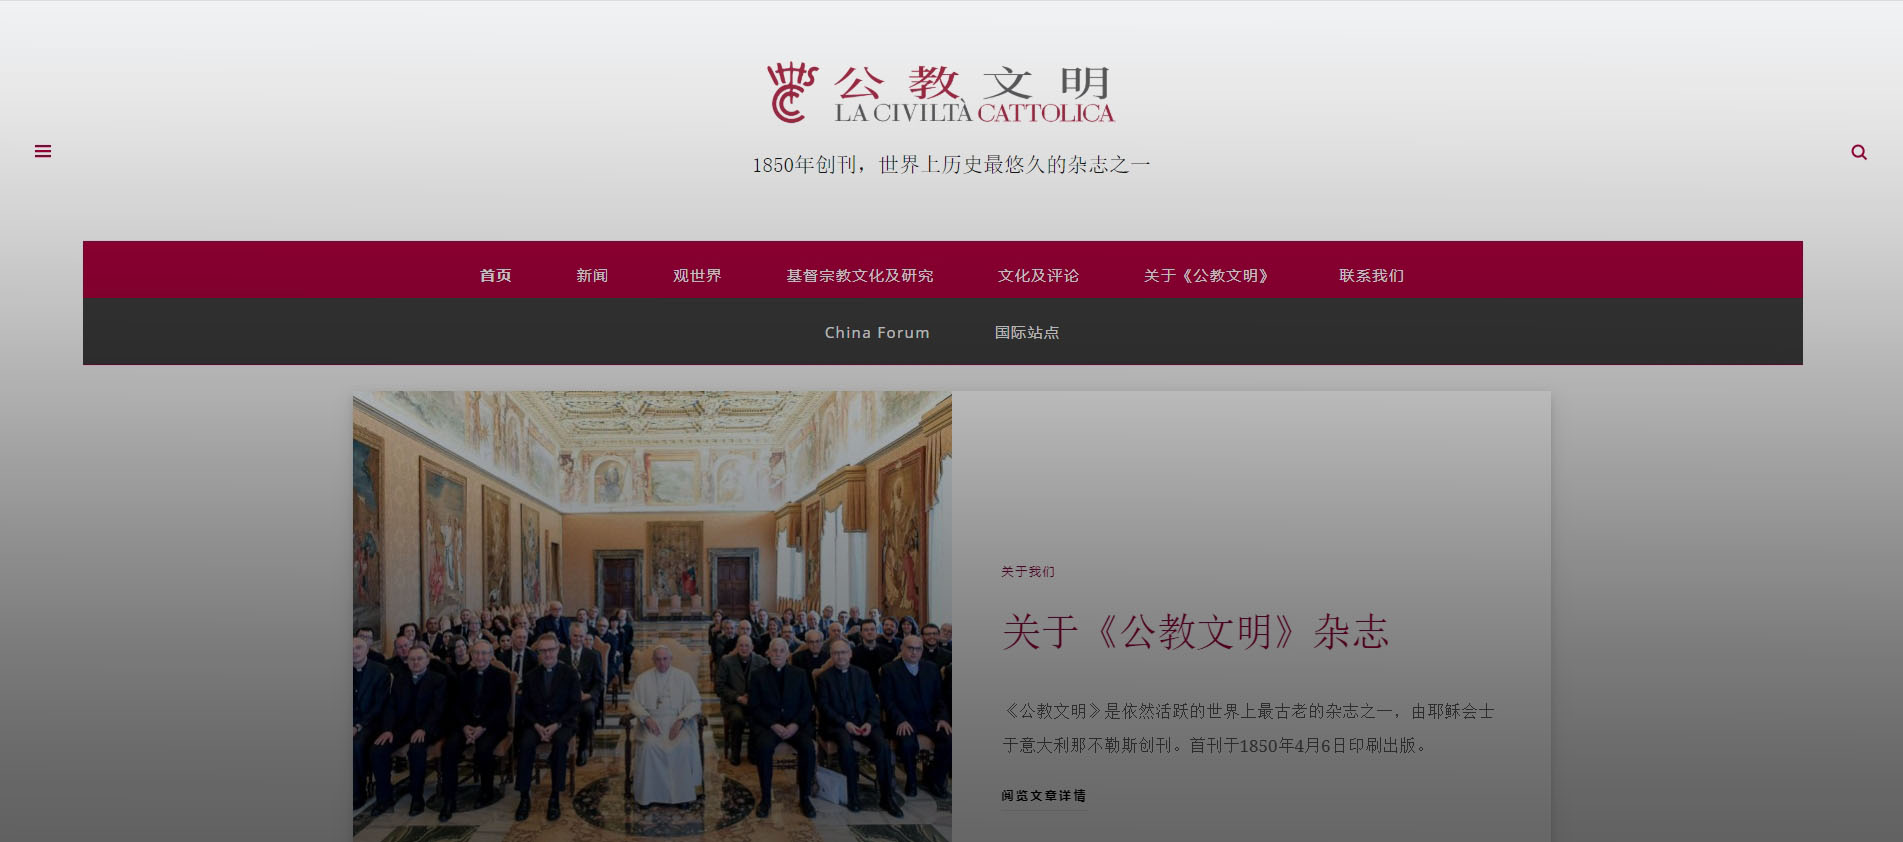 The Civiltà Cattolica launches a Chinese edition